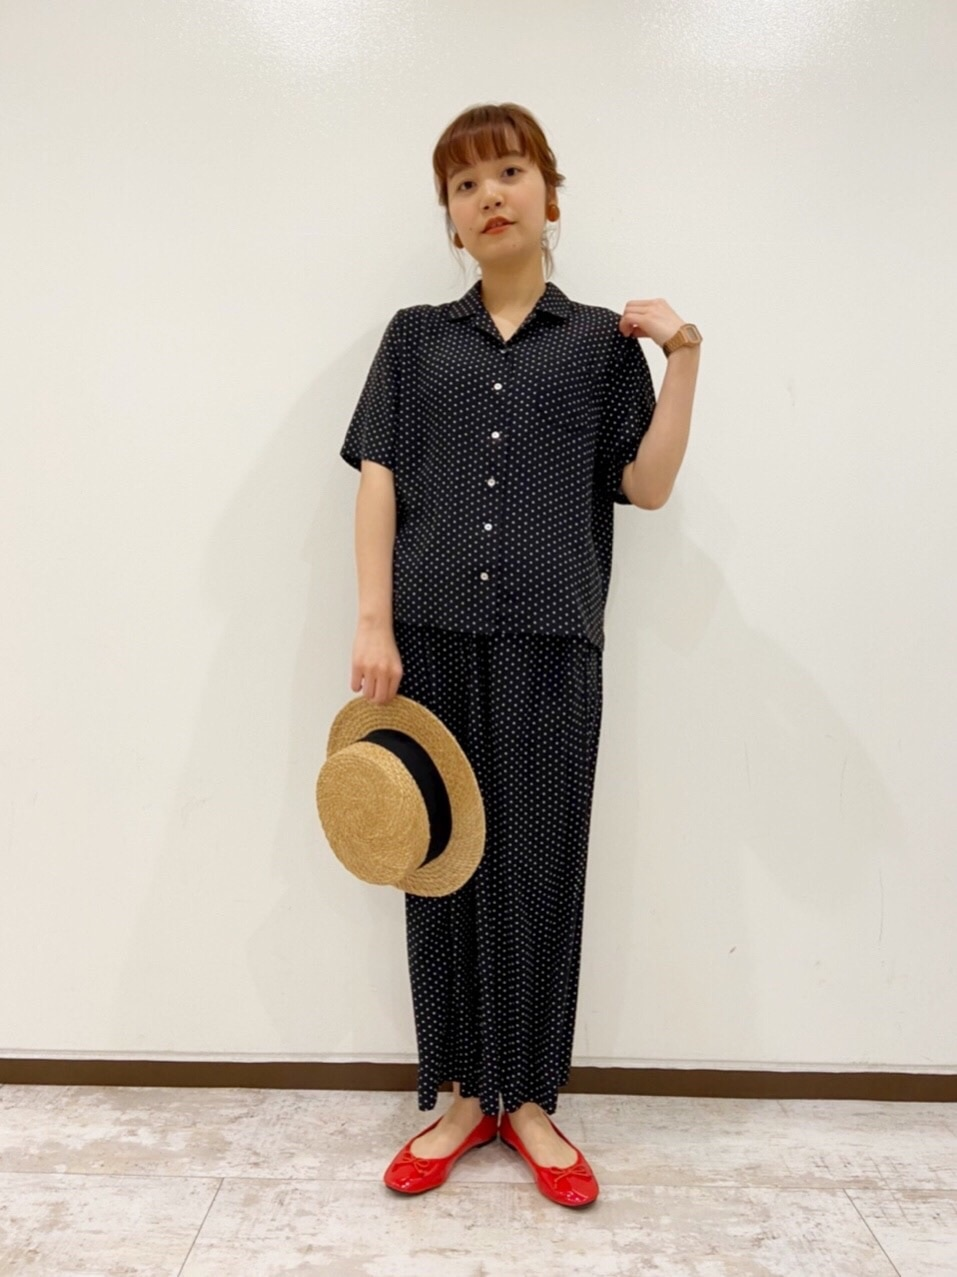 Dot and Stripes CHILD WOMAN 新宿ミロード 身長:160cm 2020.04.04